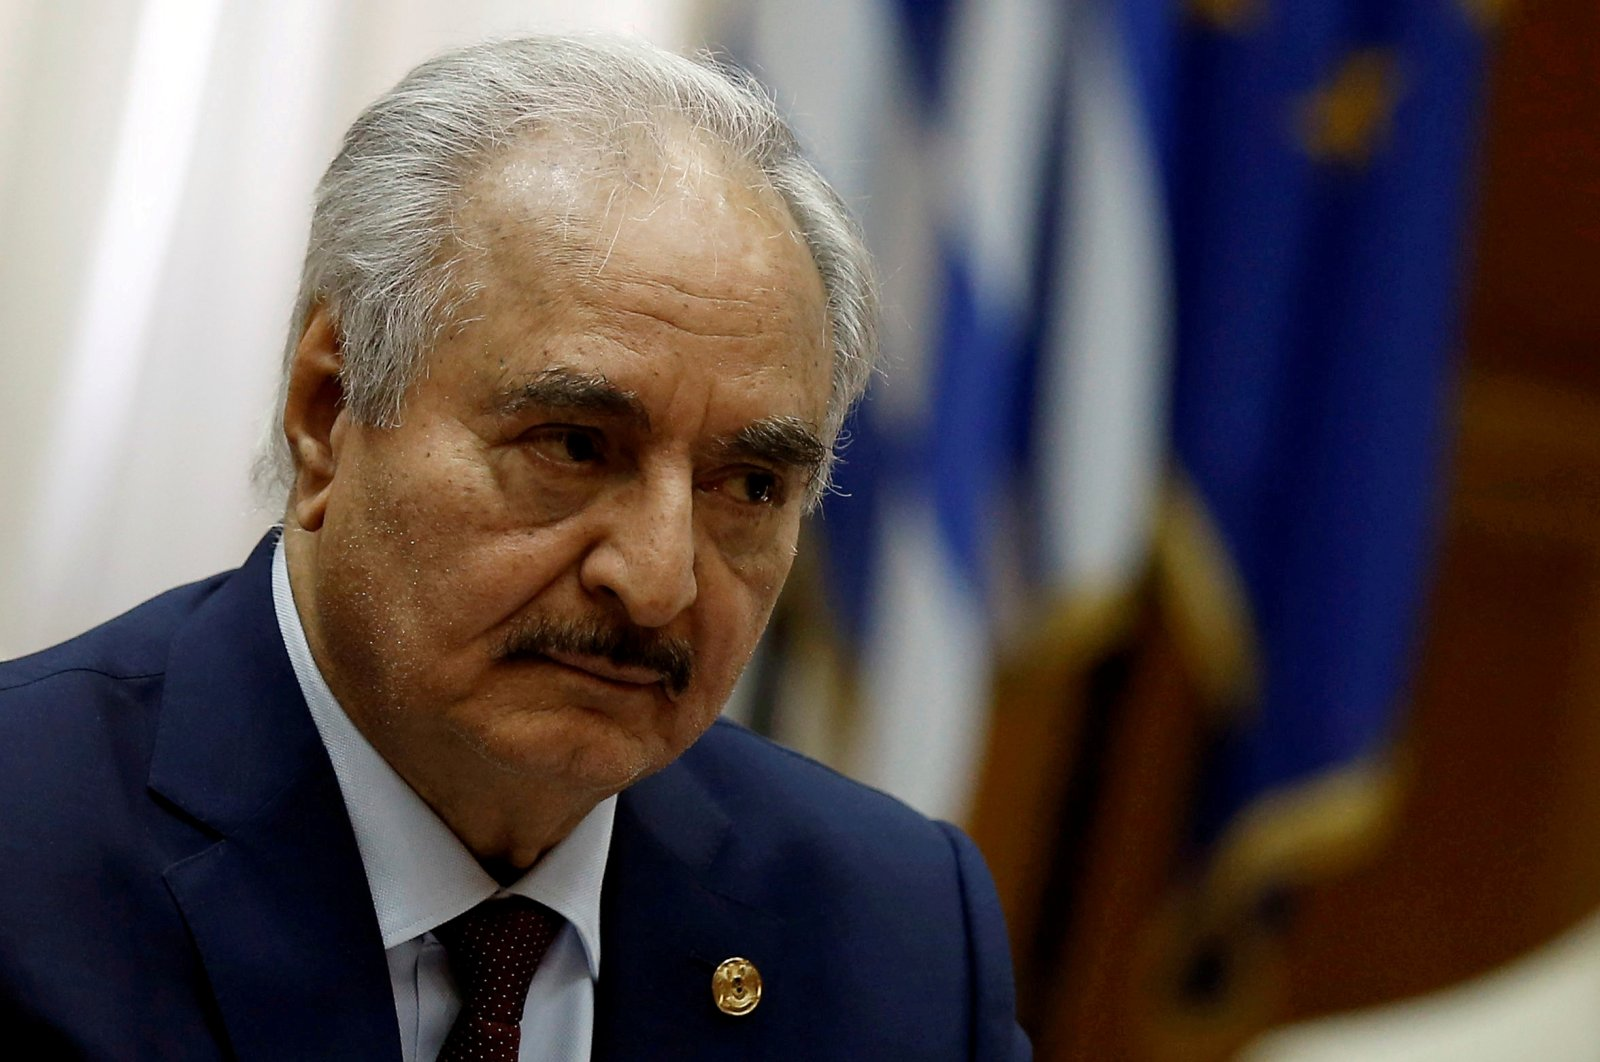 Libyan warlord Khalifa Haftar at the Parliament in Athens, Greece, Jan. 17, 2020. (Reuters Photo)